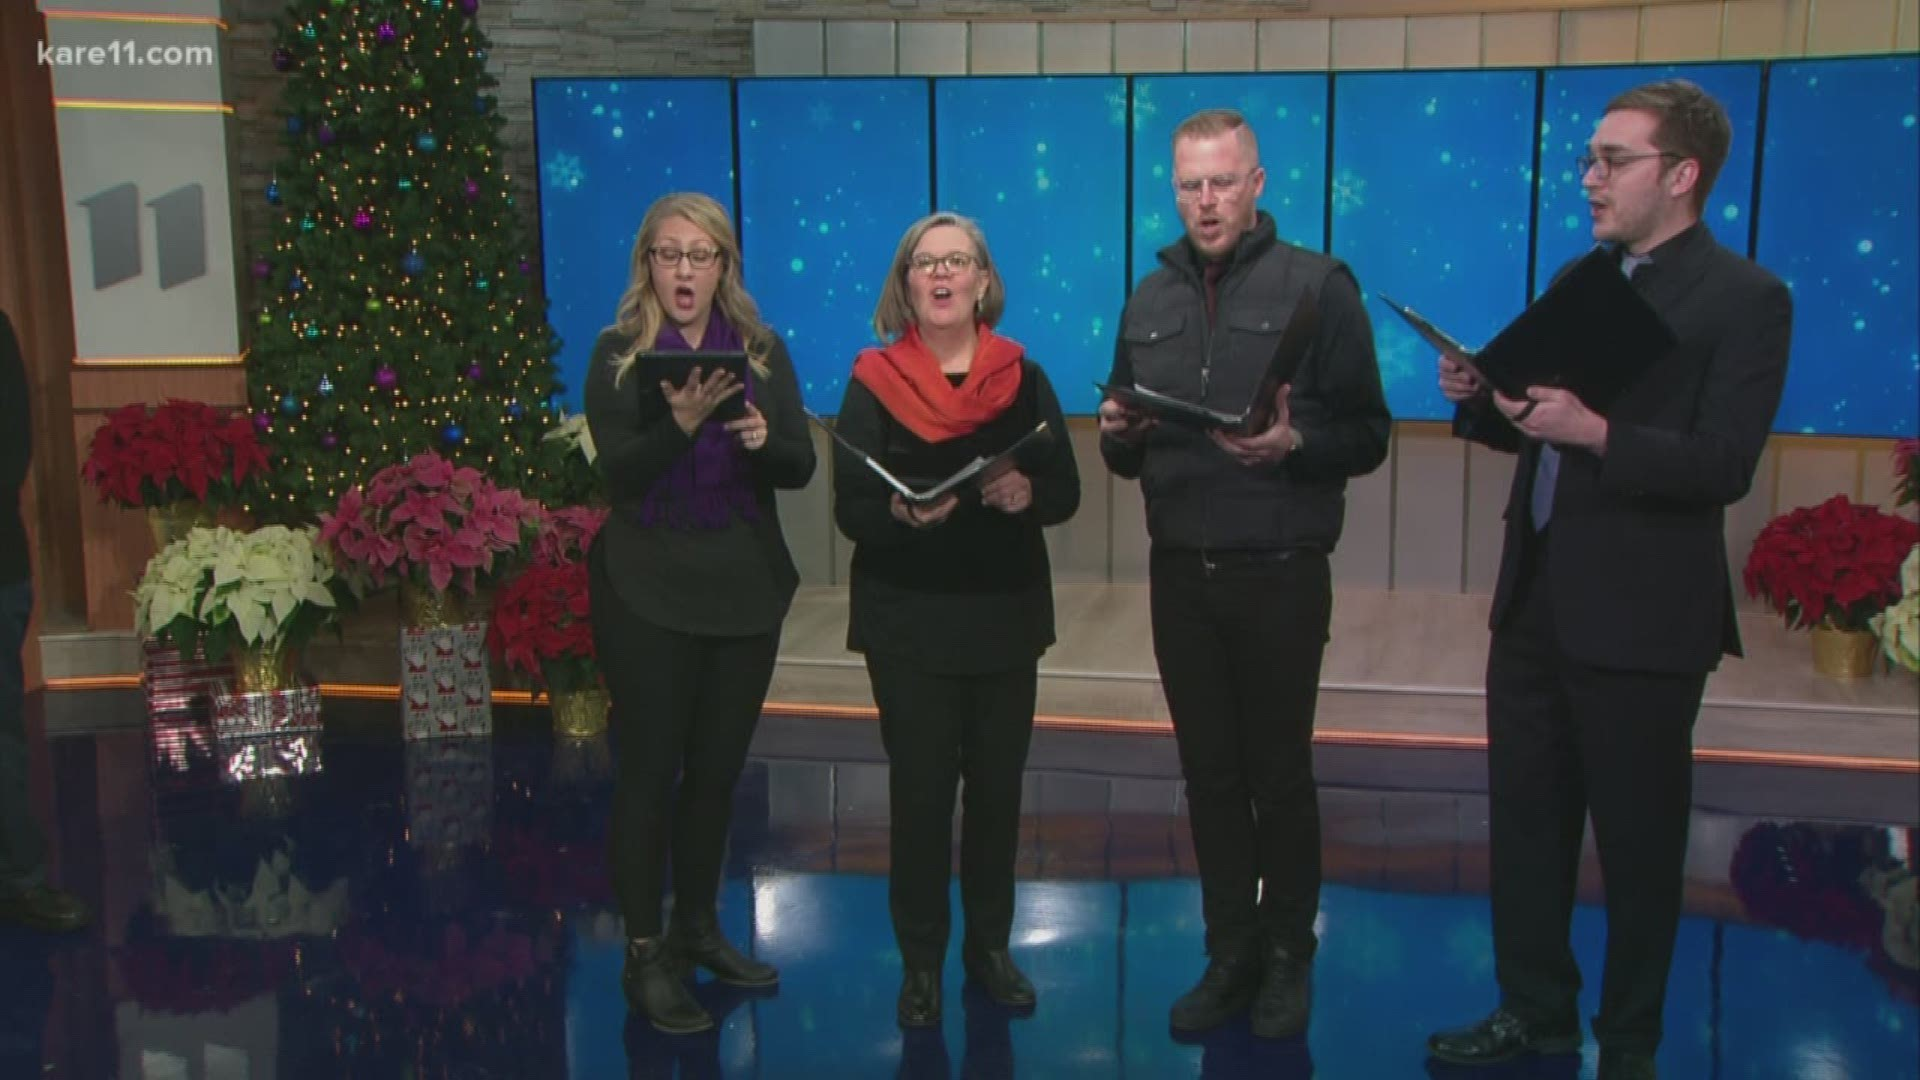 Christmas Concerts Minneapolis 2020 VocalEssence welcomes Christmas concert series | kare11.com